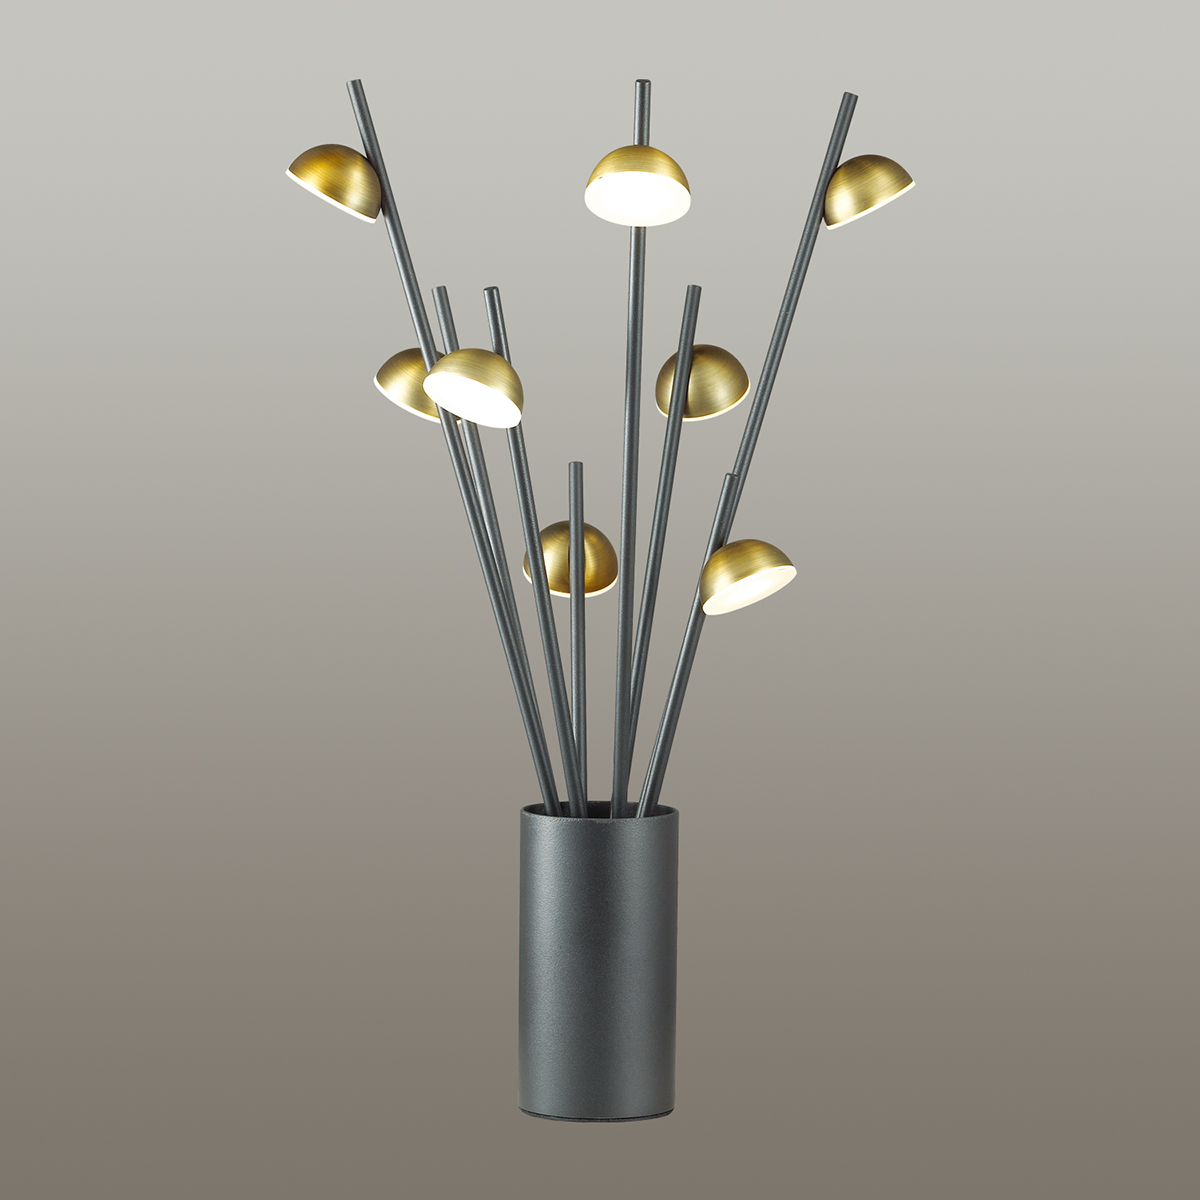 Настольная лампа ODEON LIGHT арт. 4156/24TL